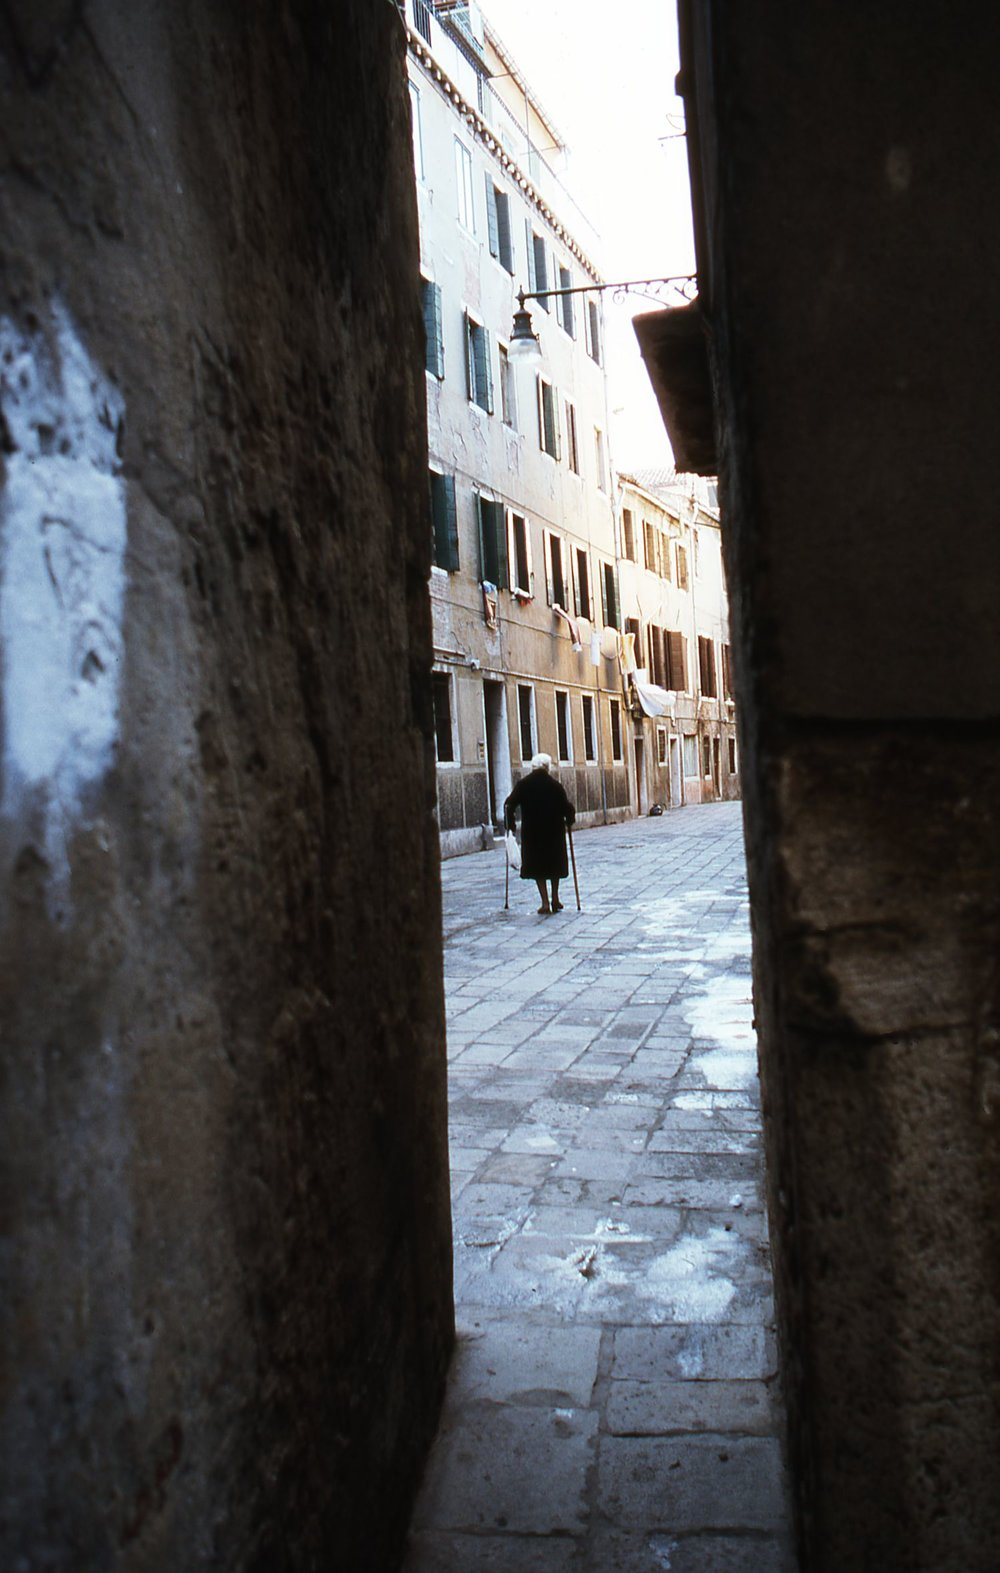 Venice | Alone in Venice | photo sandrine cohen